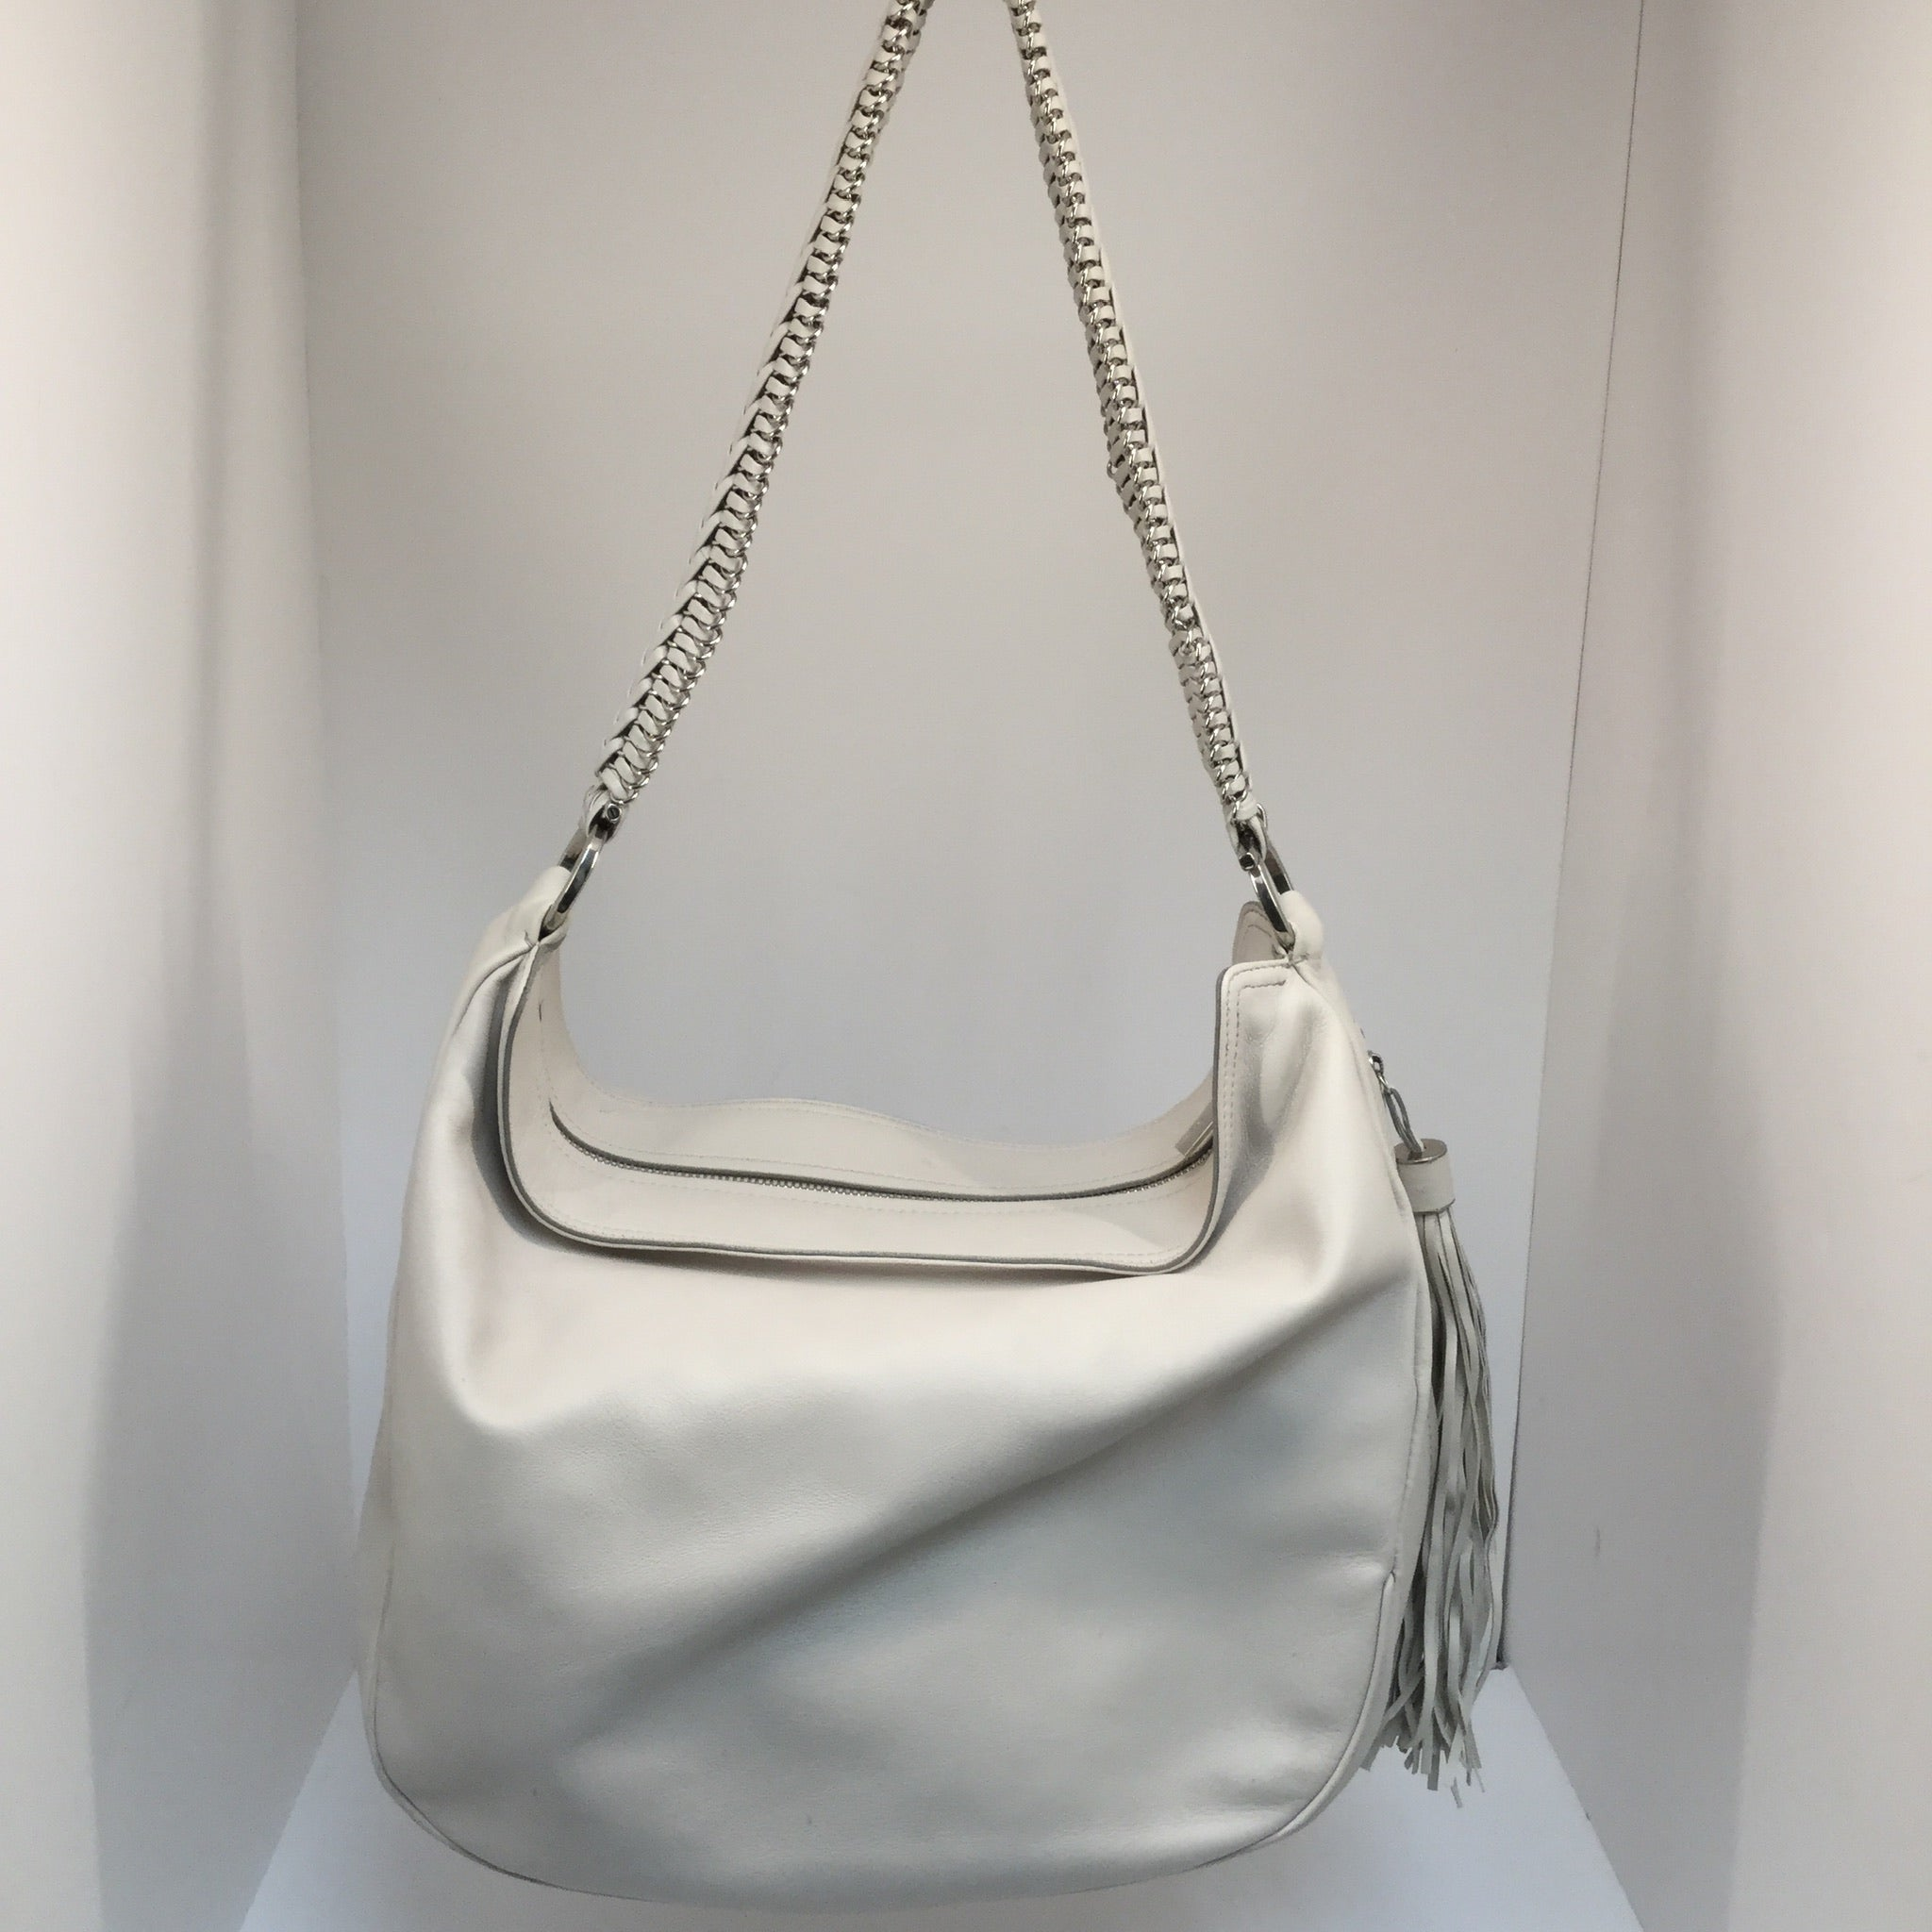 Salvatore Ferragamo Mel Braided-Strap Hobo Bag